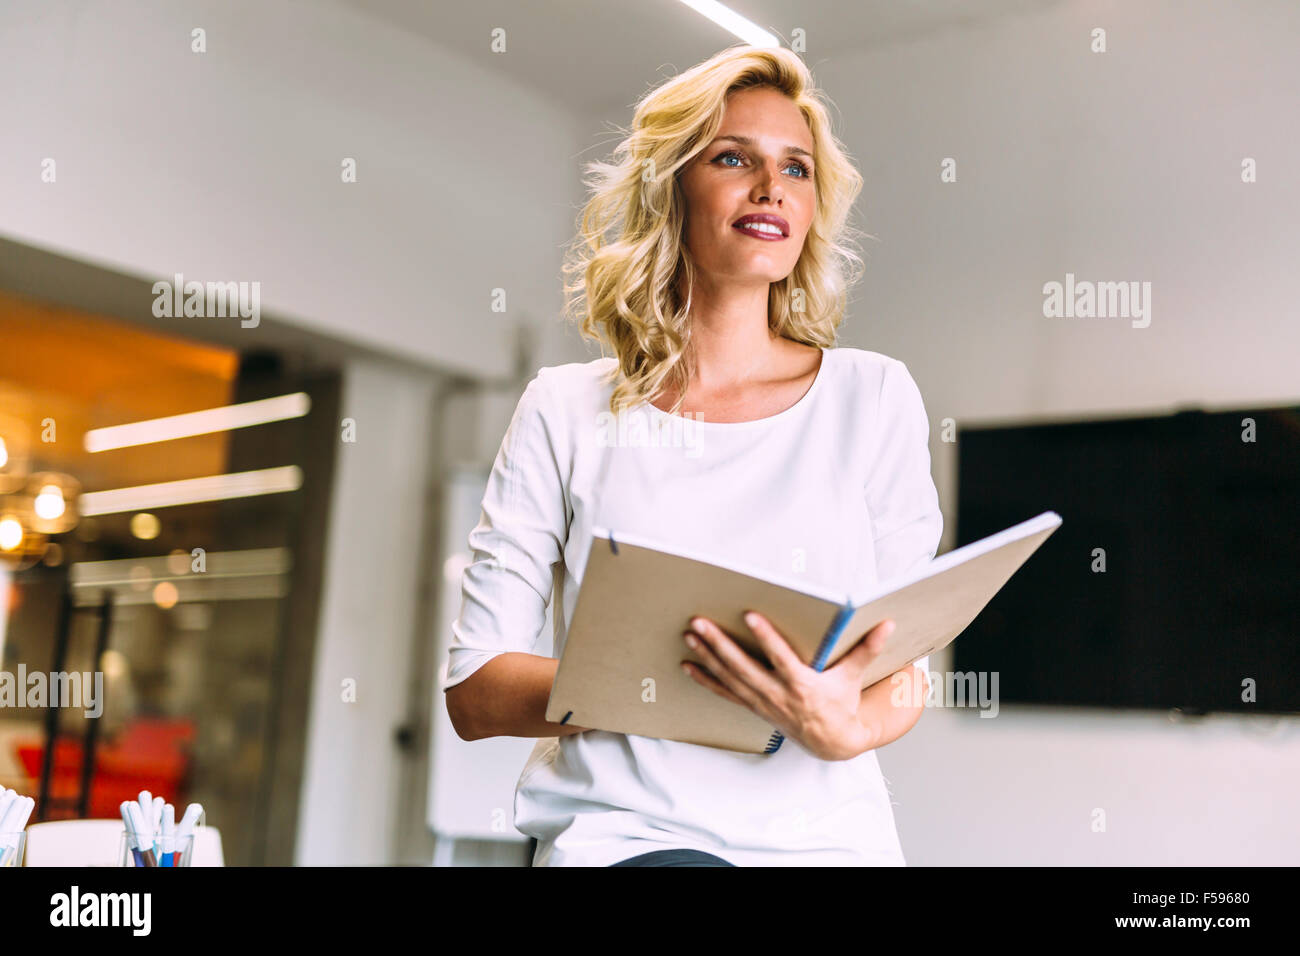 Beautiful woman educating herself by reading books - Stock Image